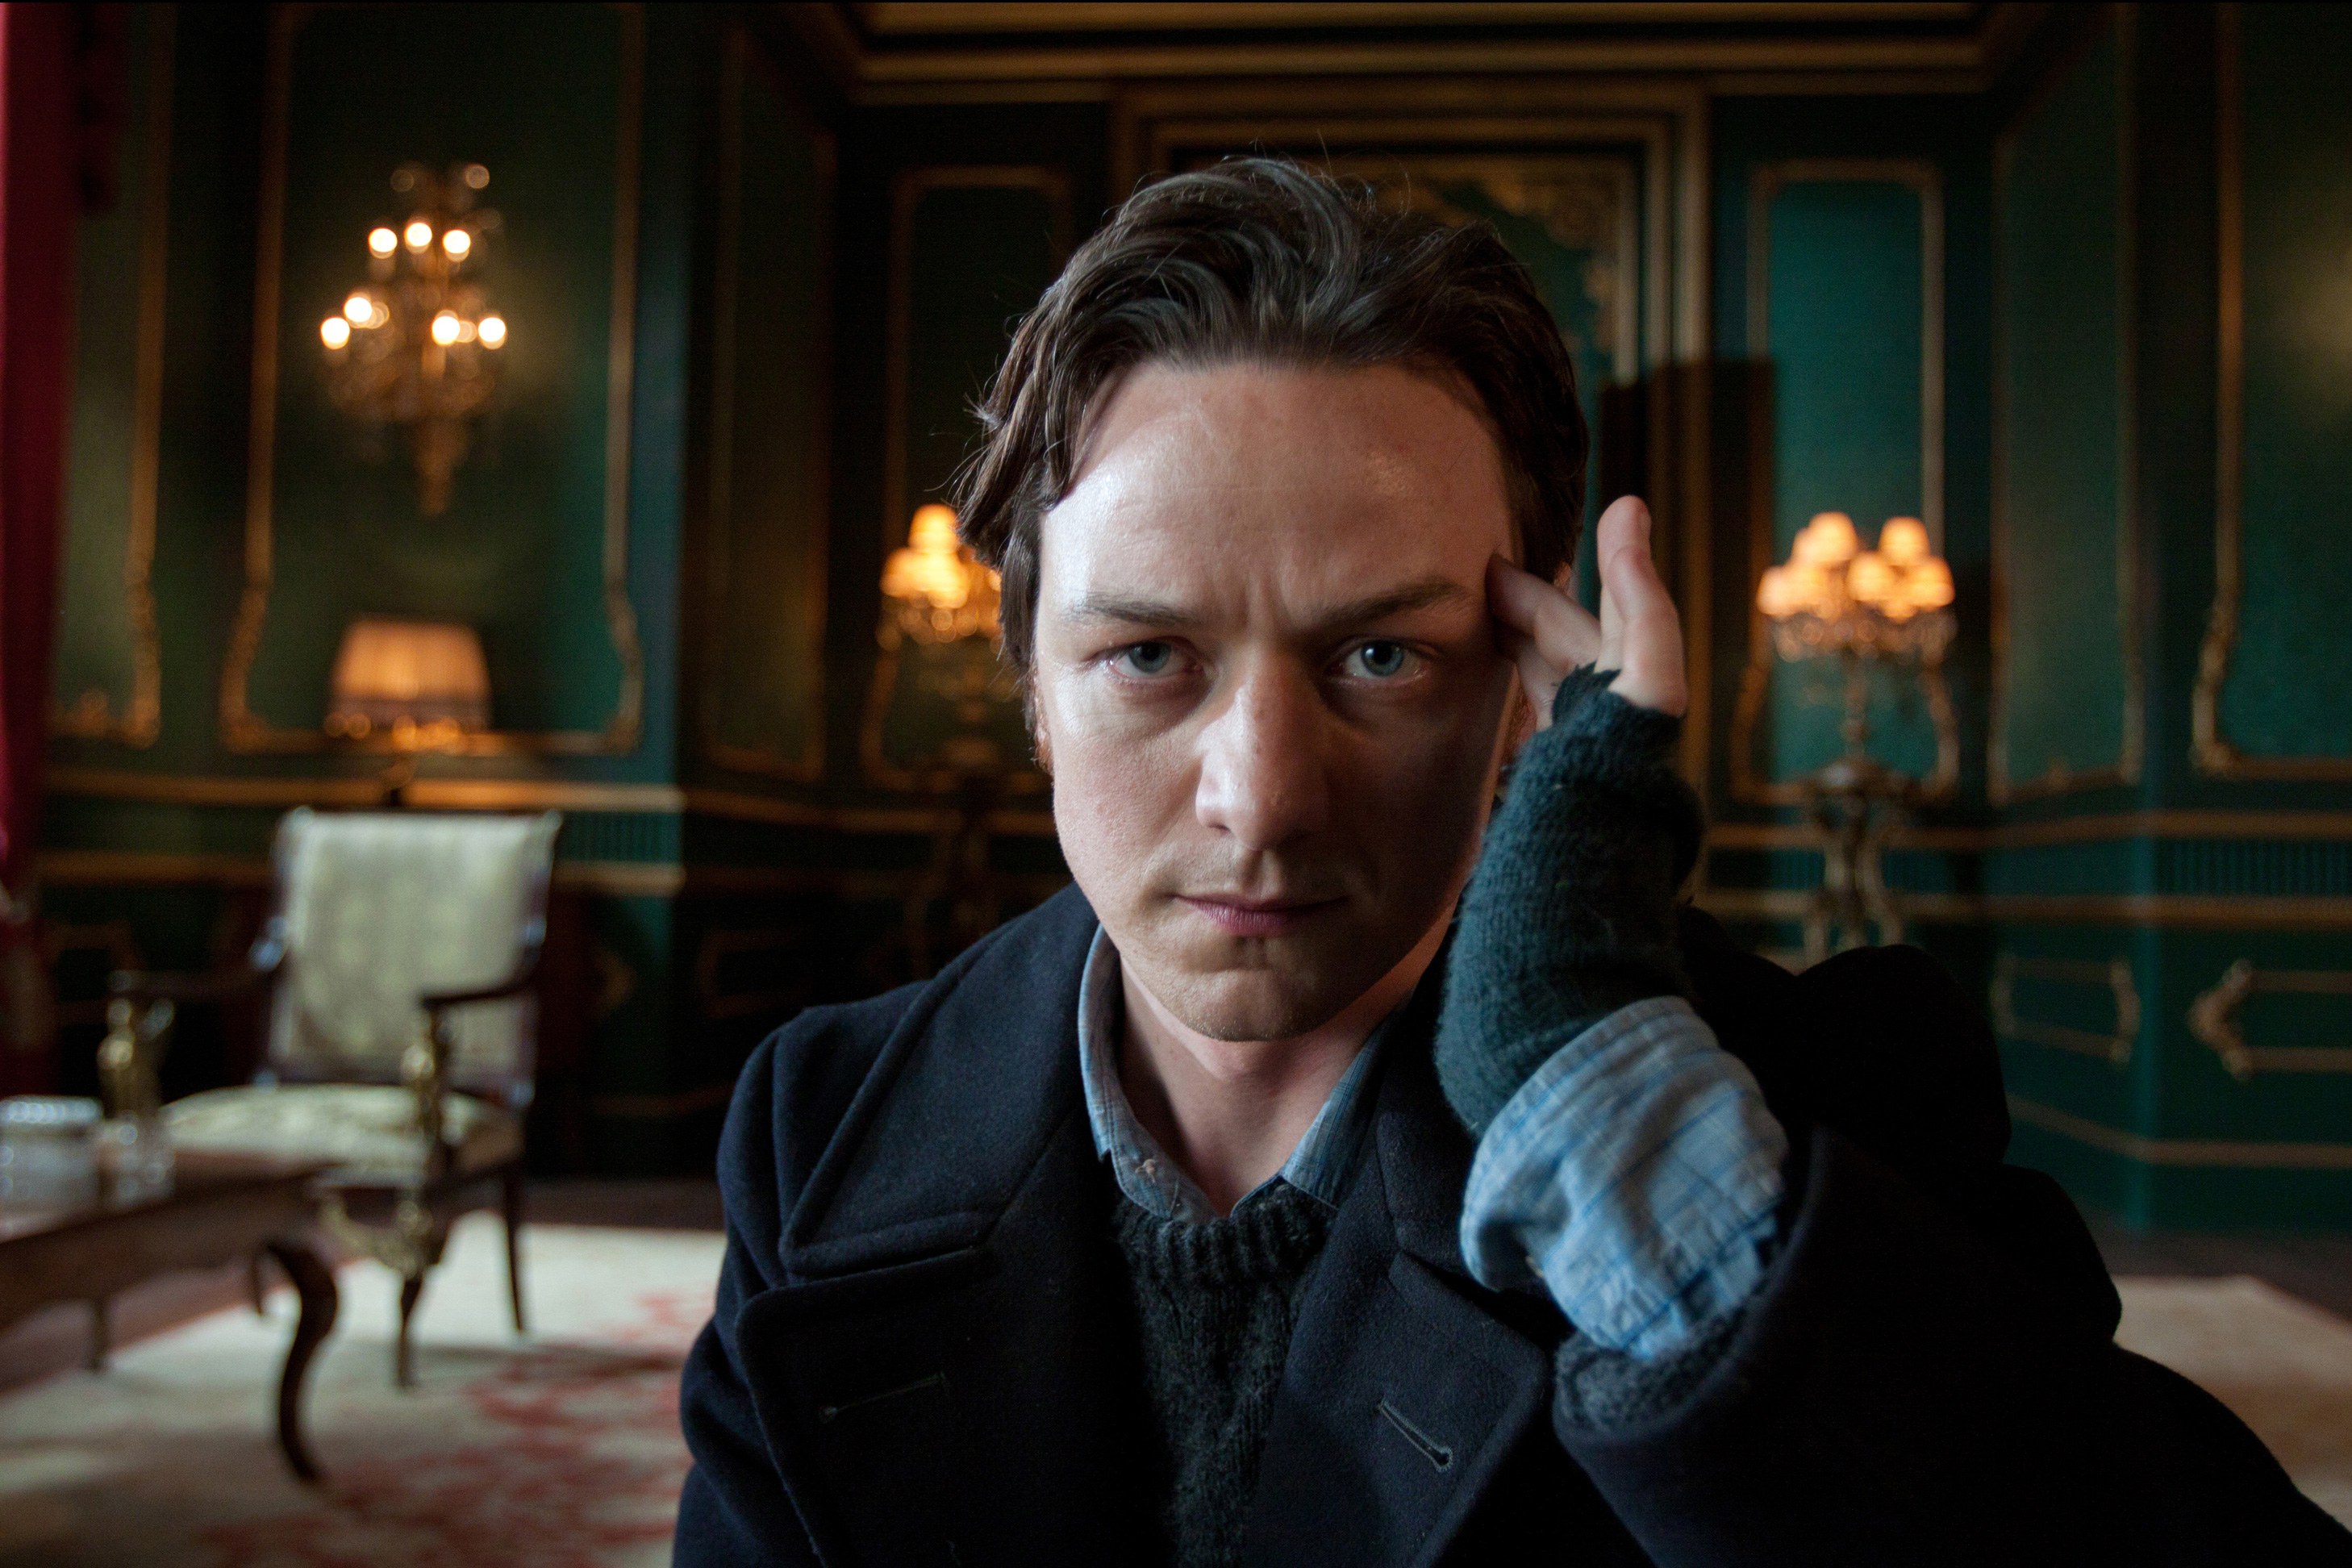 James McAvoy has revealed that he will be shooting the next X-Men movie in the summer.